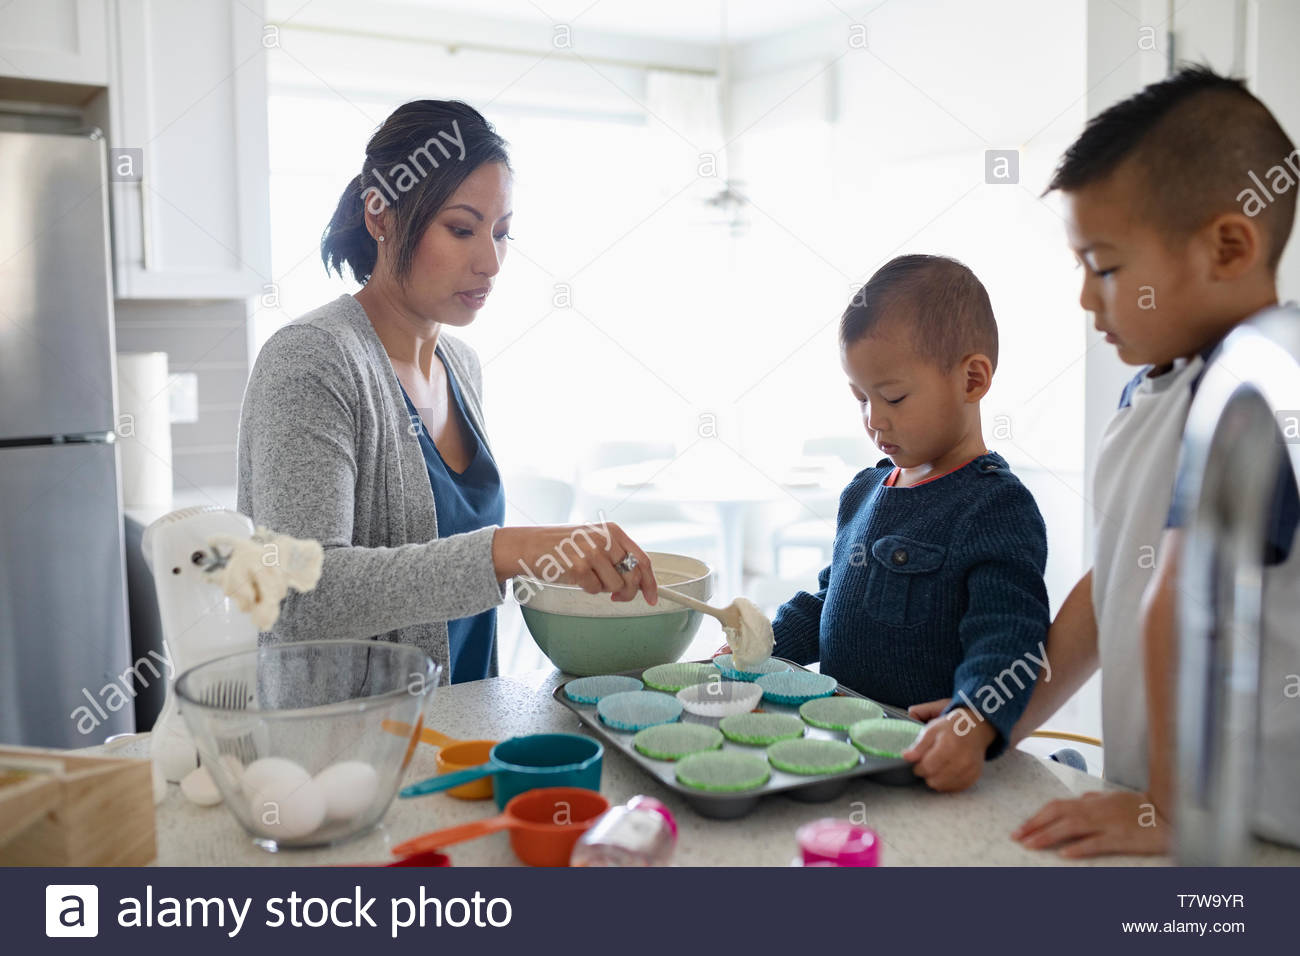 Mother and sons baking cupcakes in kitchen - Stock Image